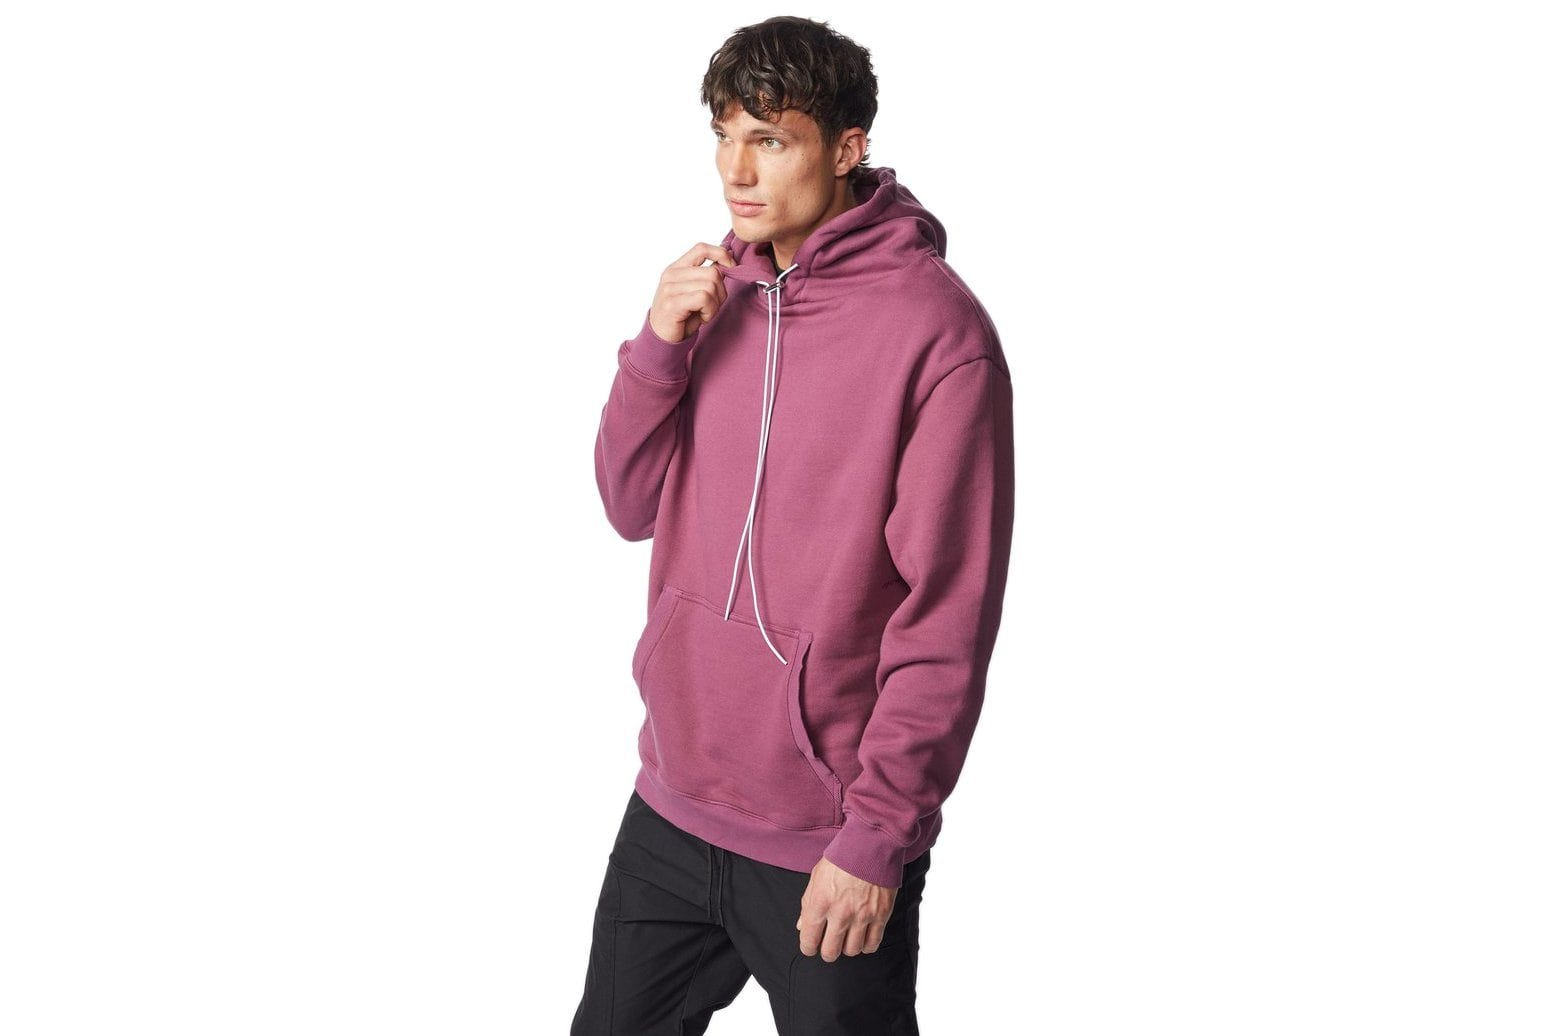 LOWGO HOOD SWEATER MENS SOFTGOODS ZANEROBE